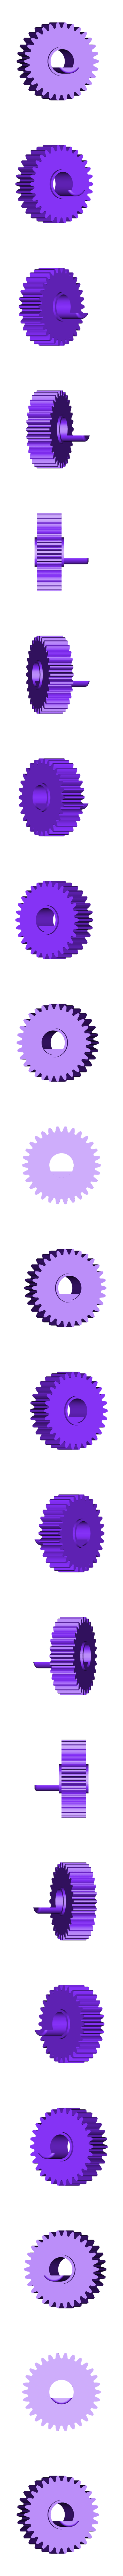 Tray gear.stl Download free STL file Clockwork pen carousel • 3D printing template, EvolvingExtrusions